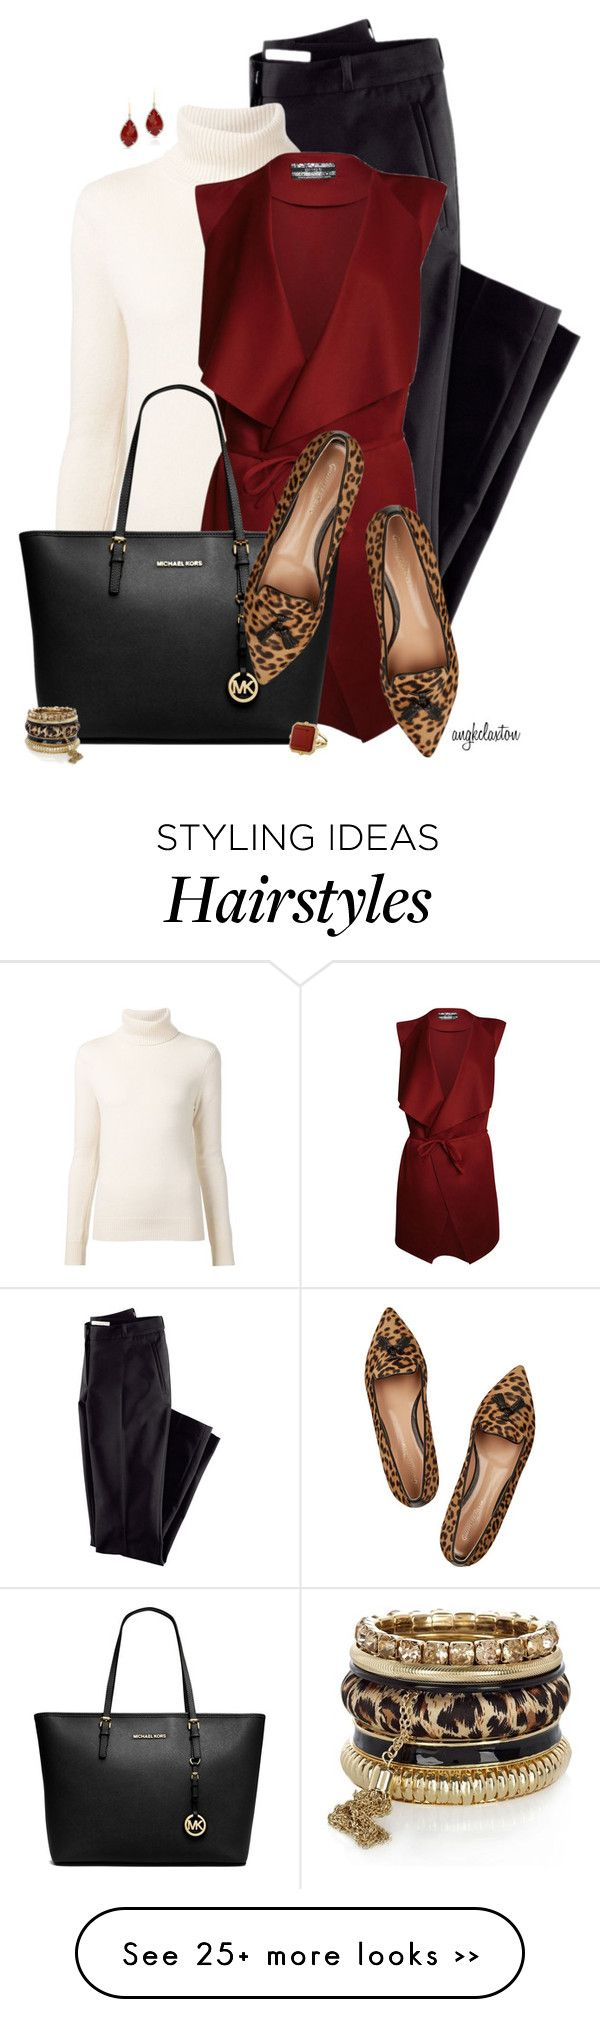 """""""Tassel Loafers"""" by angkclaxton on Polyvore featuring H&M, Chloé, Michael Kors, Gianvito Rossi and River Island"""